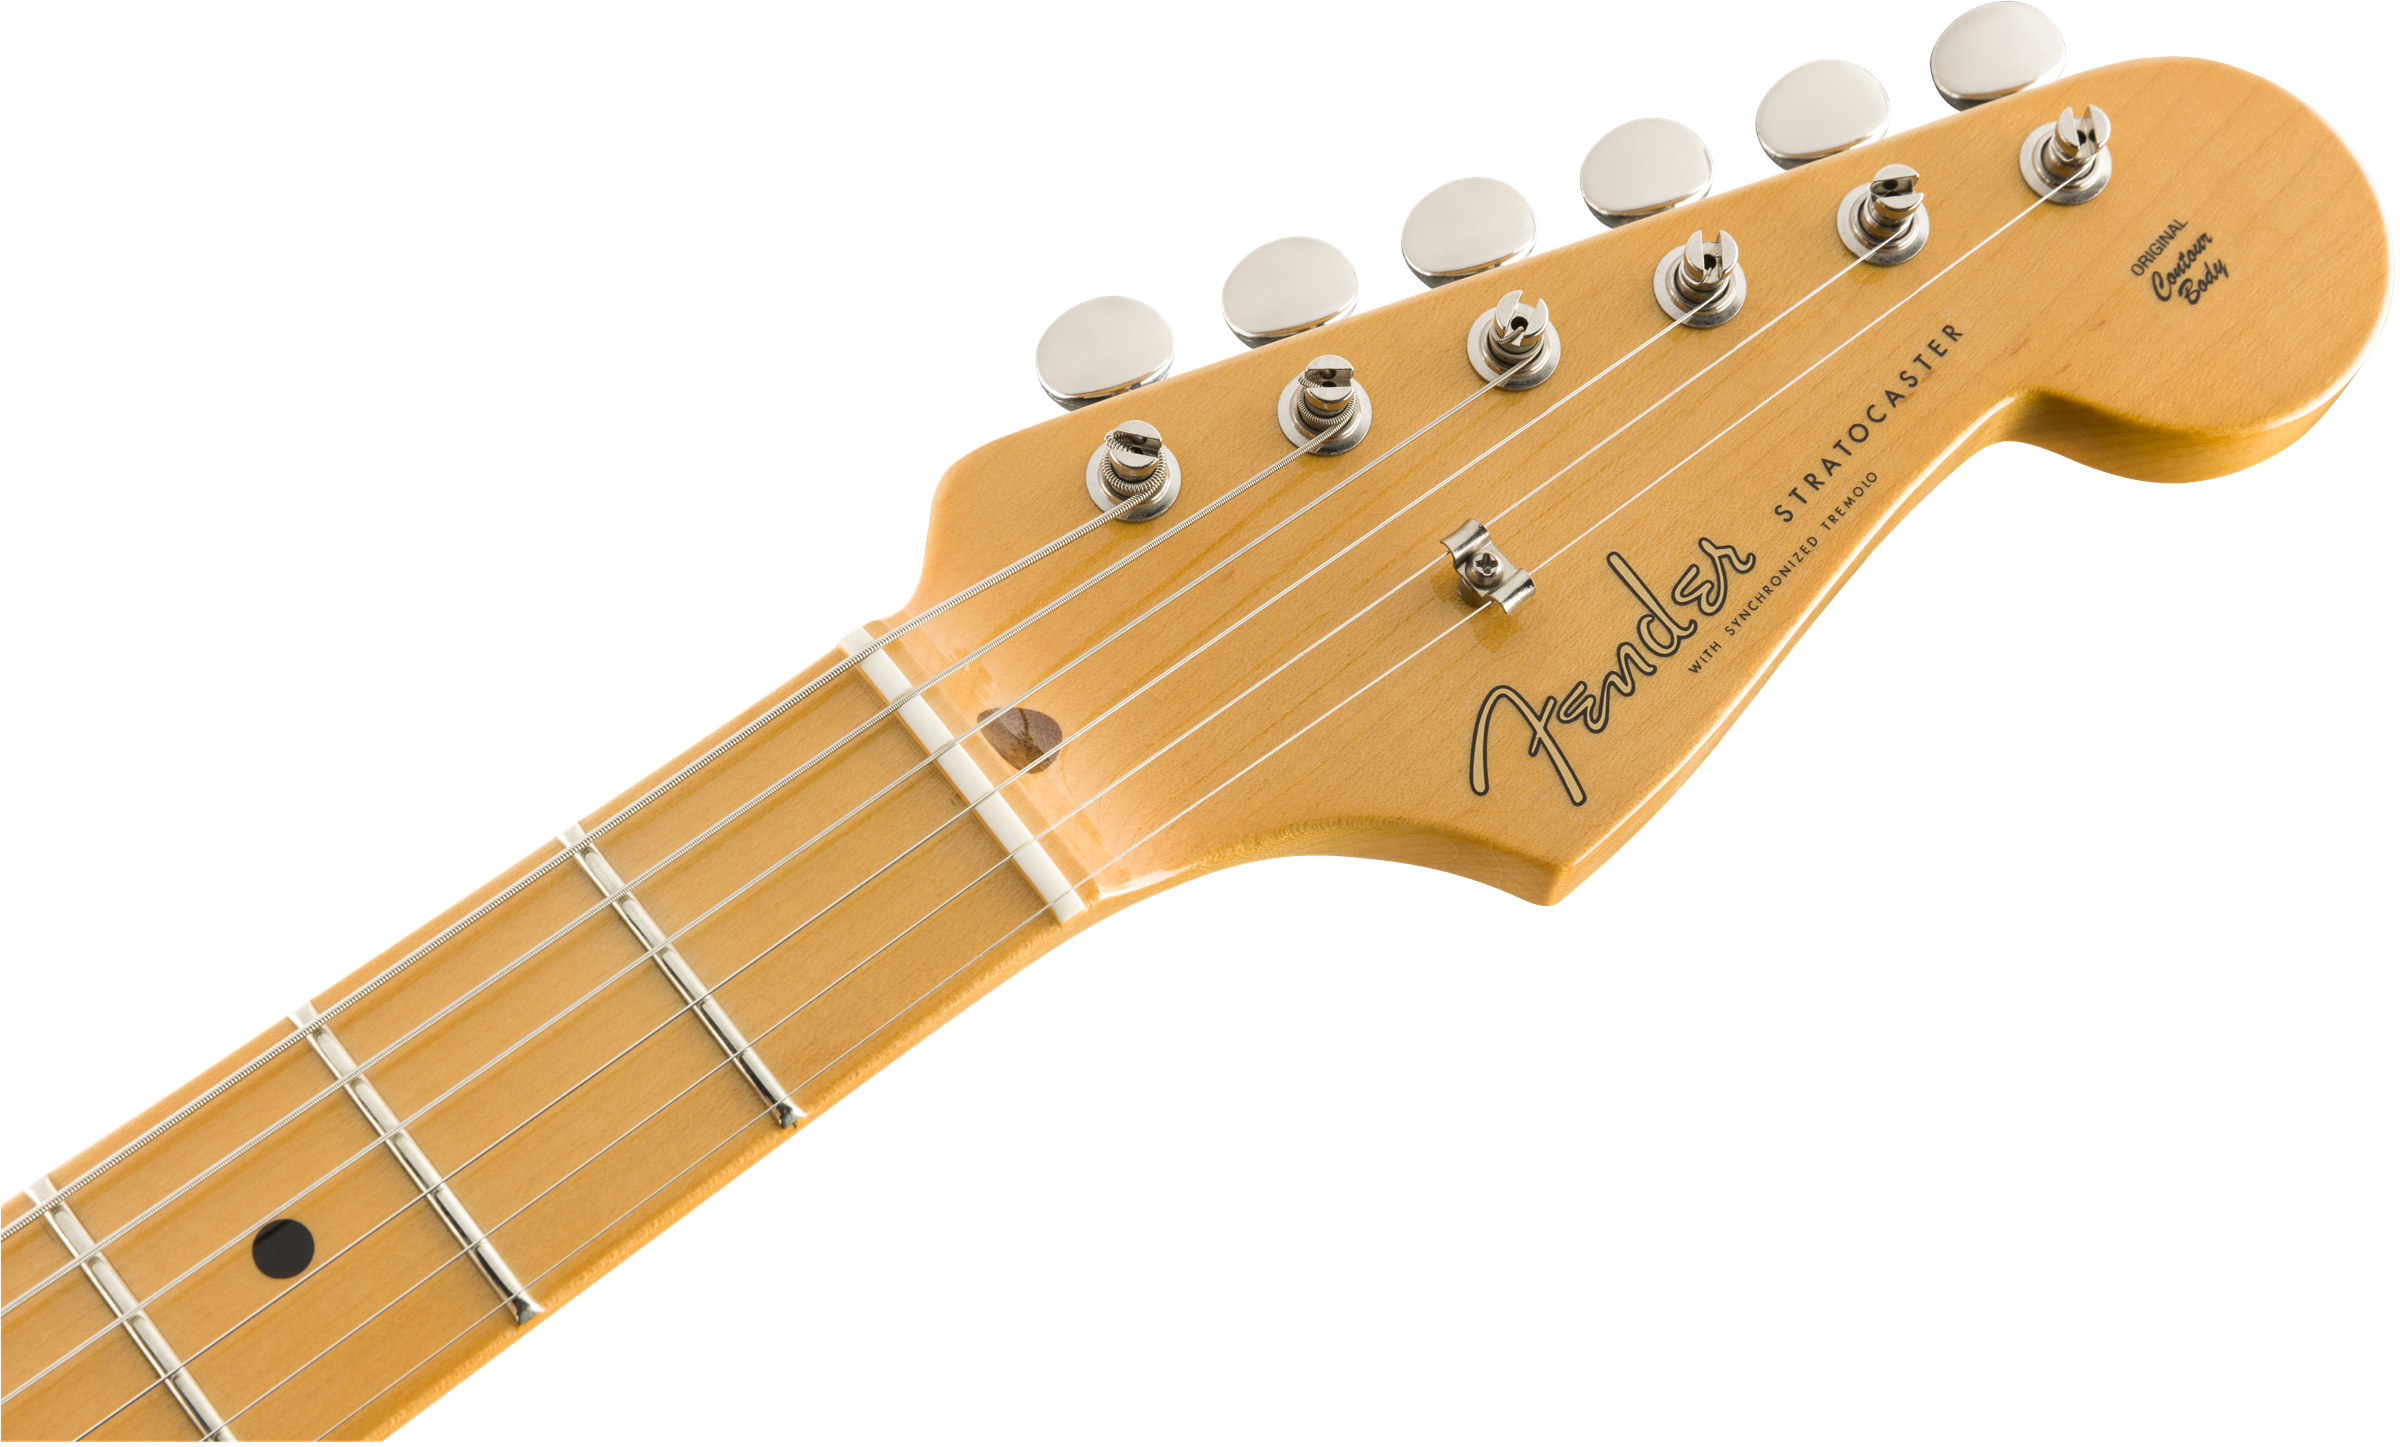 Mexican Strat Sss Wiring Diagram Right Hand Library Start Jimmie Vaughan Stratocaster Artist Series Fender Custom Shop Hover To Zoom